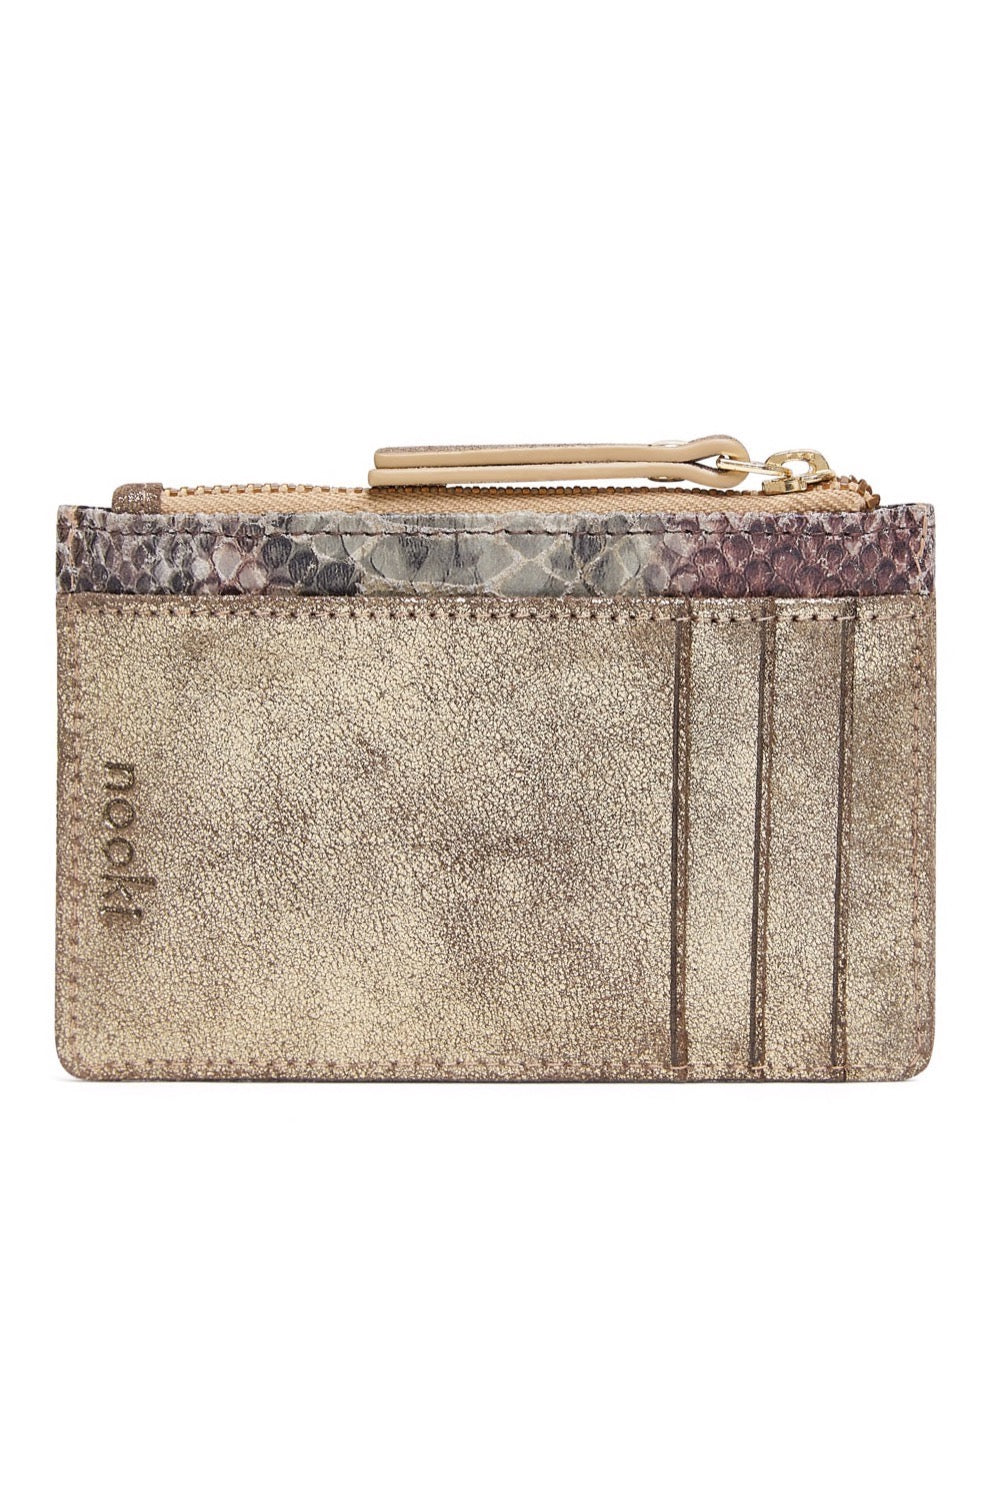 Rubin Card Holder - Gold & Rose Snake print